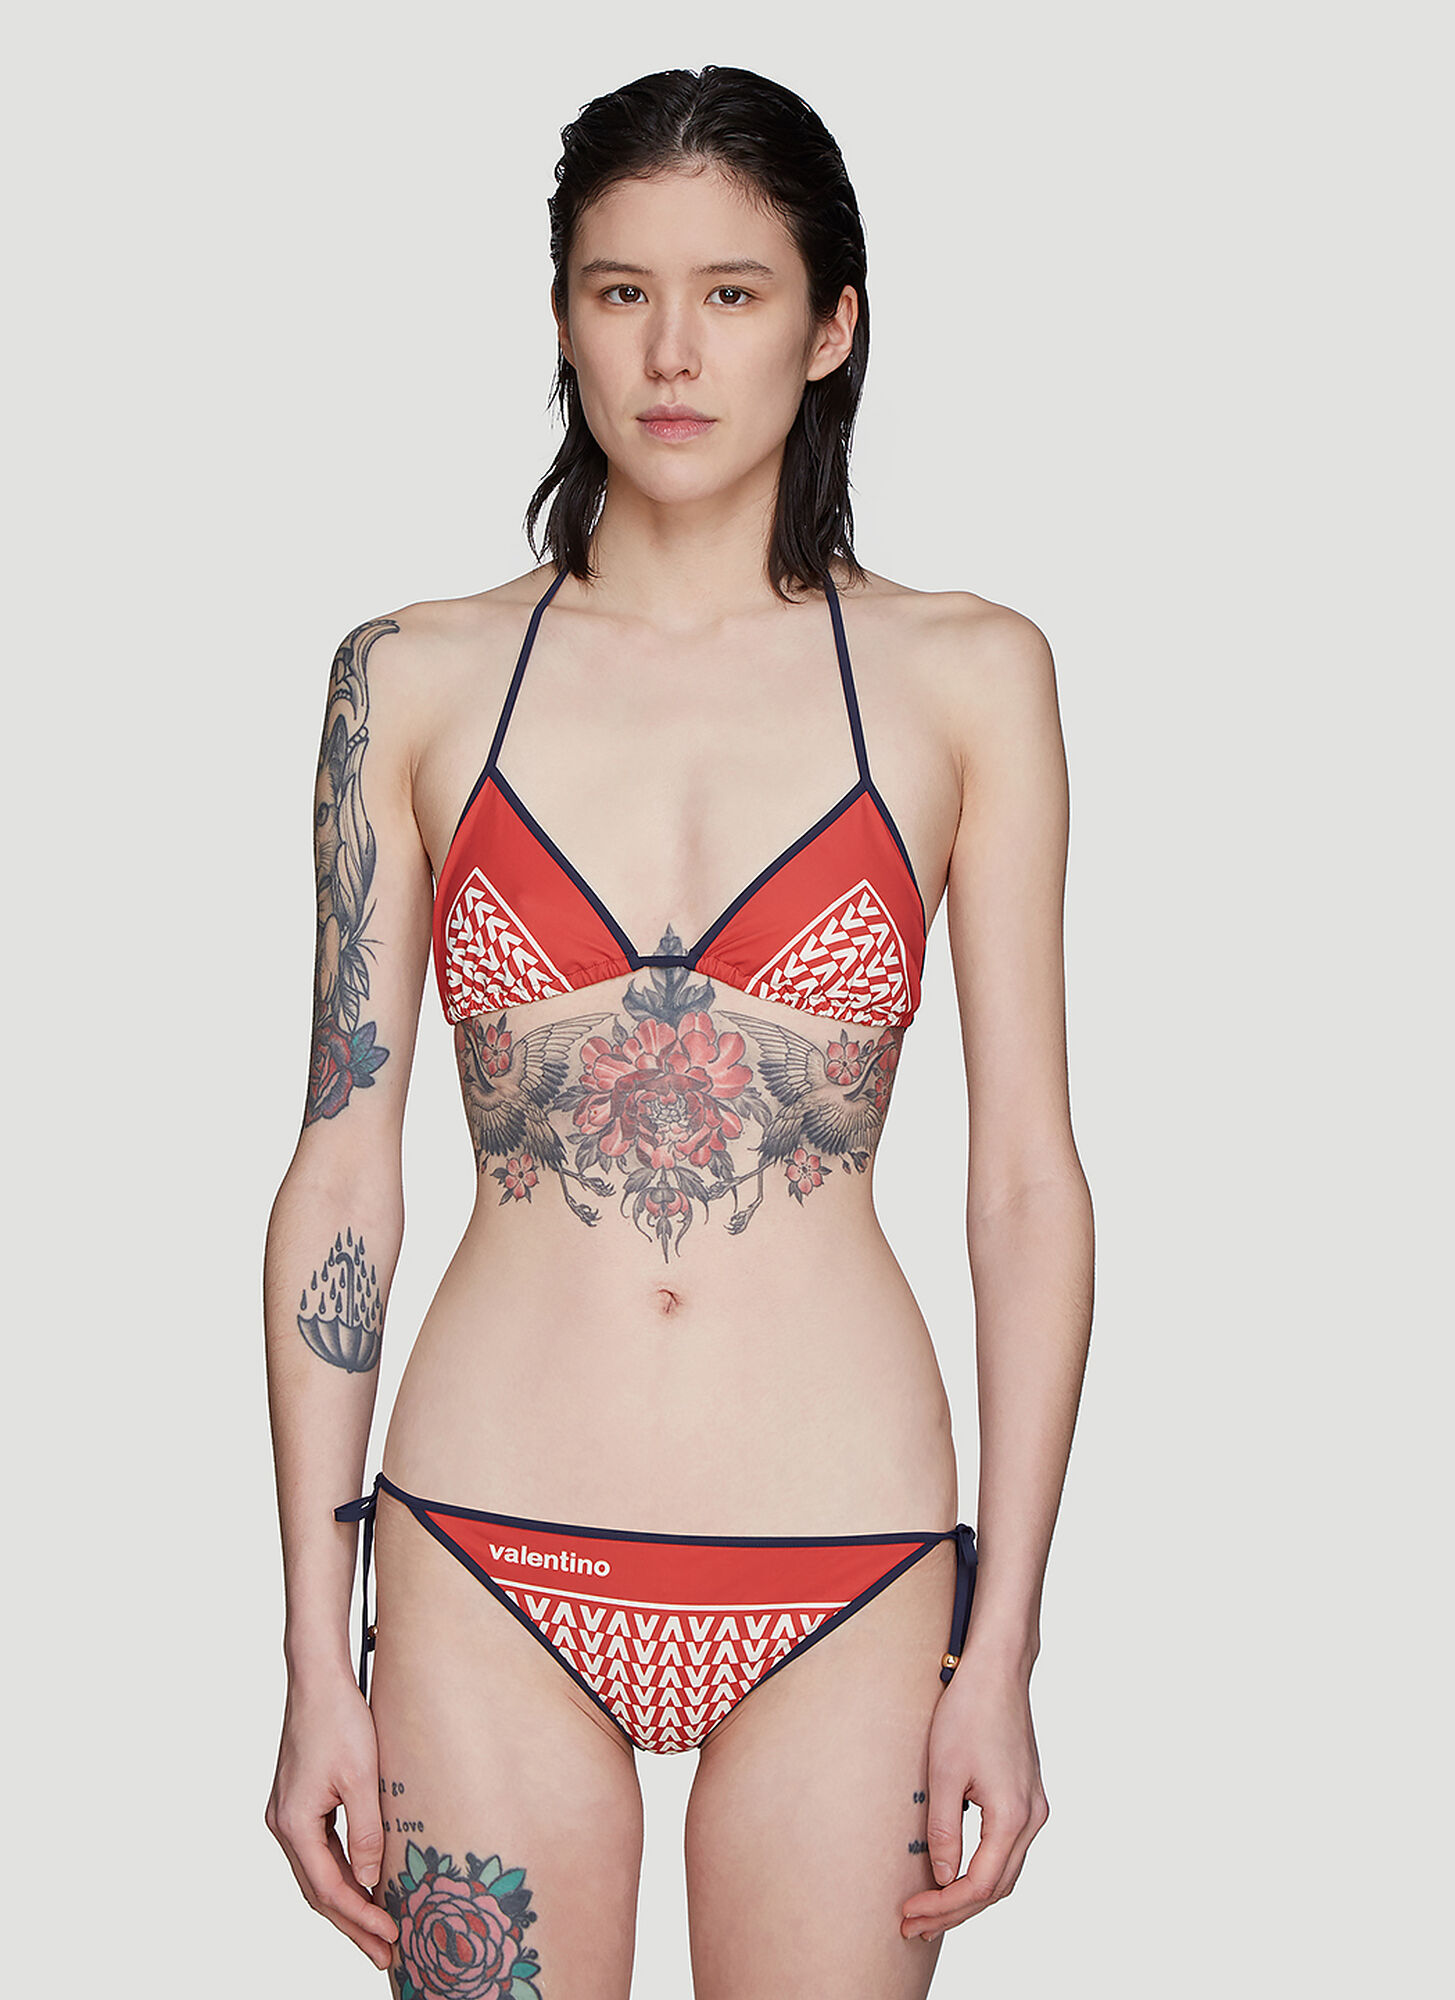 Valentino V Print Bikini in Red